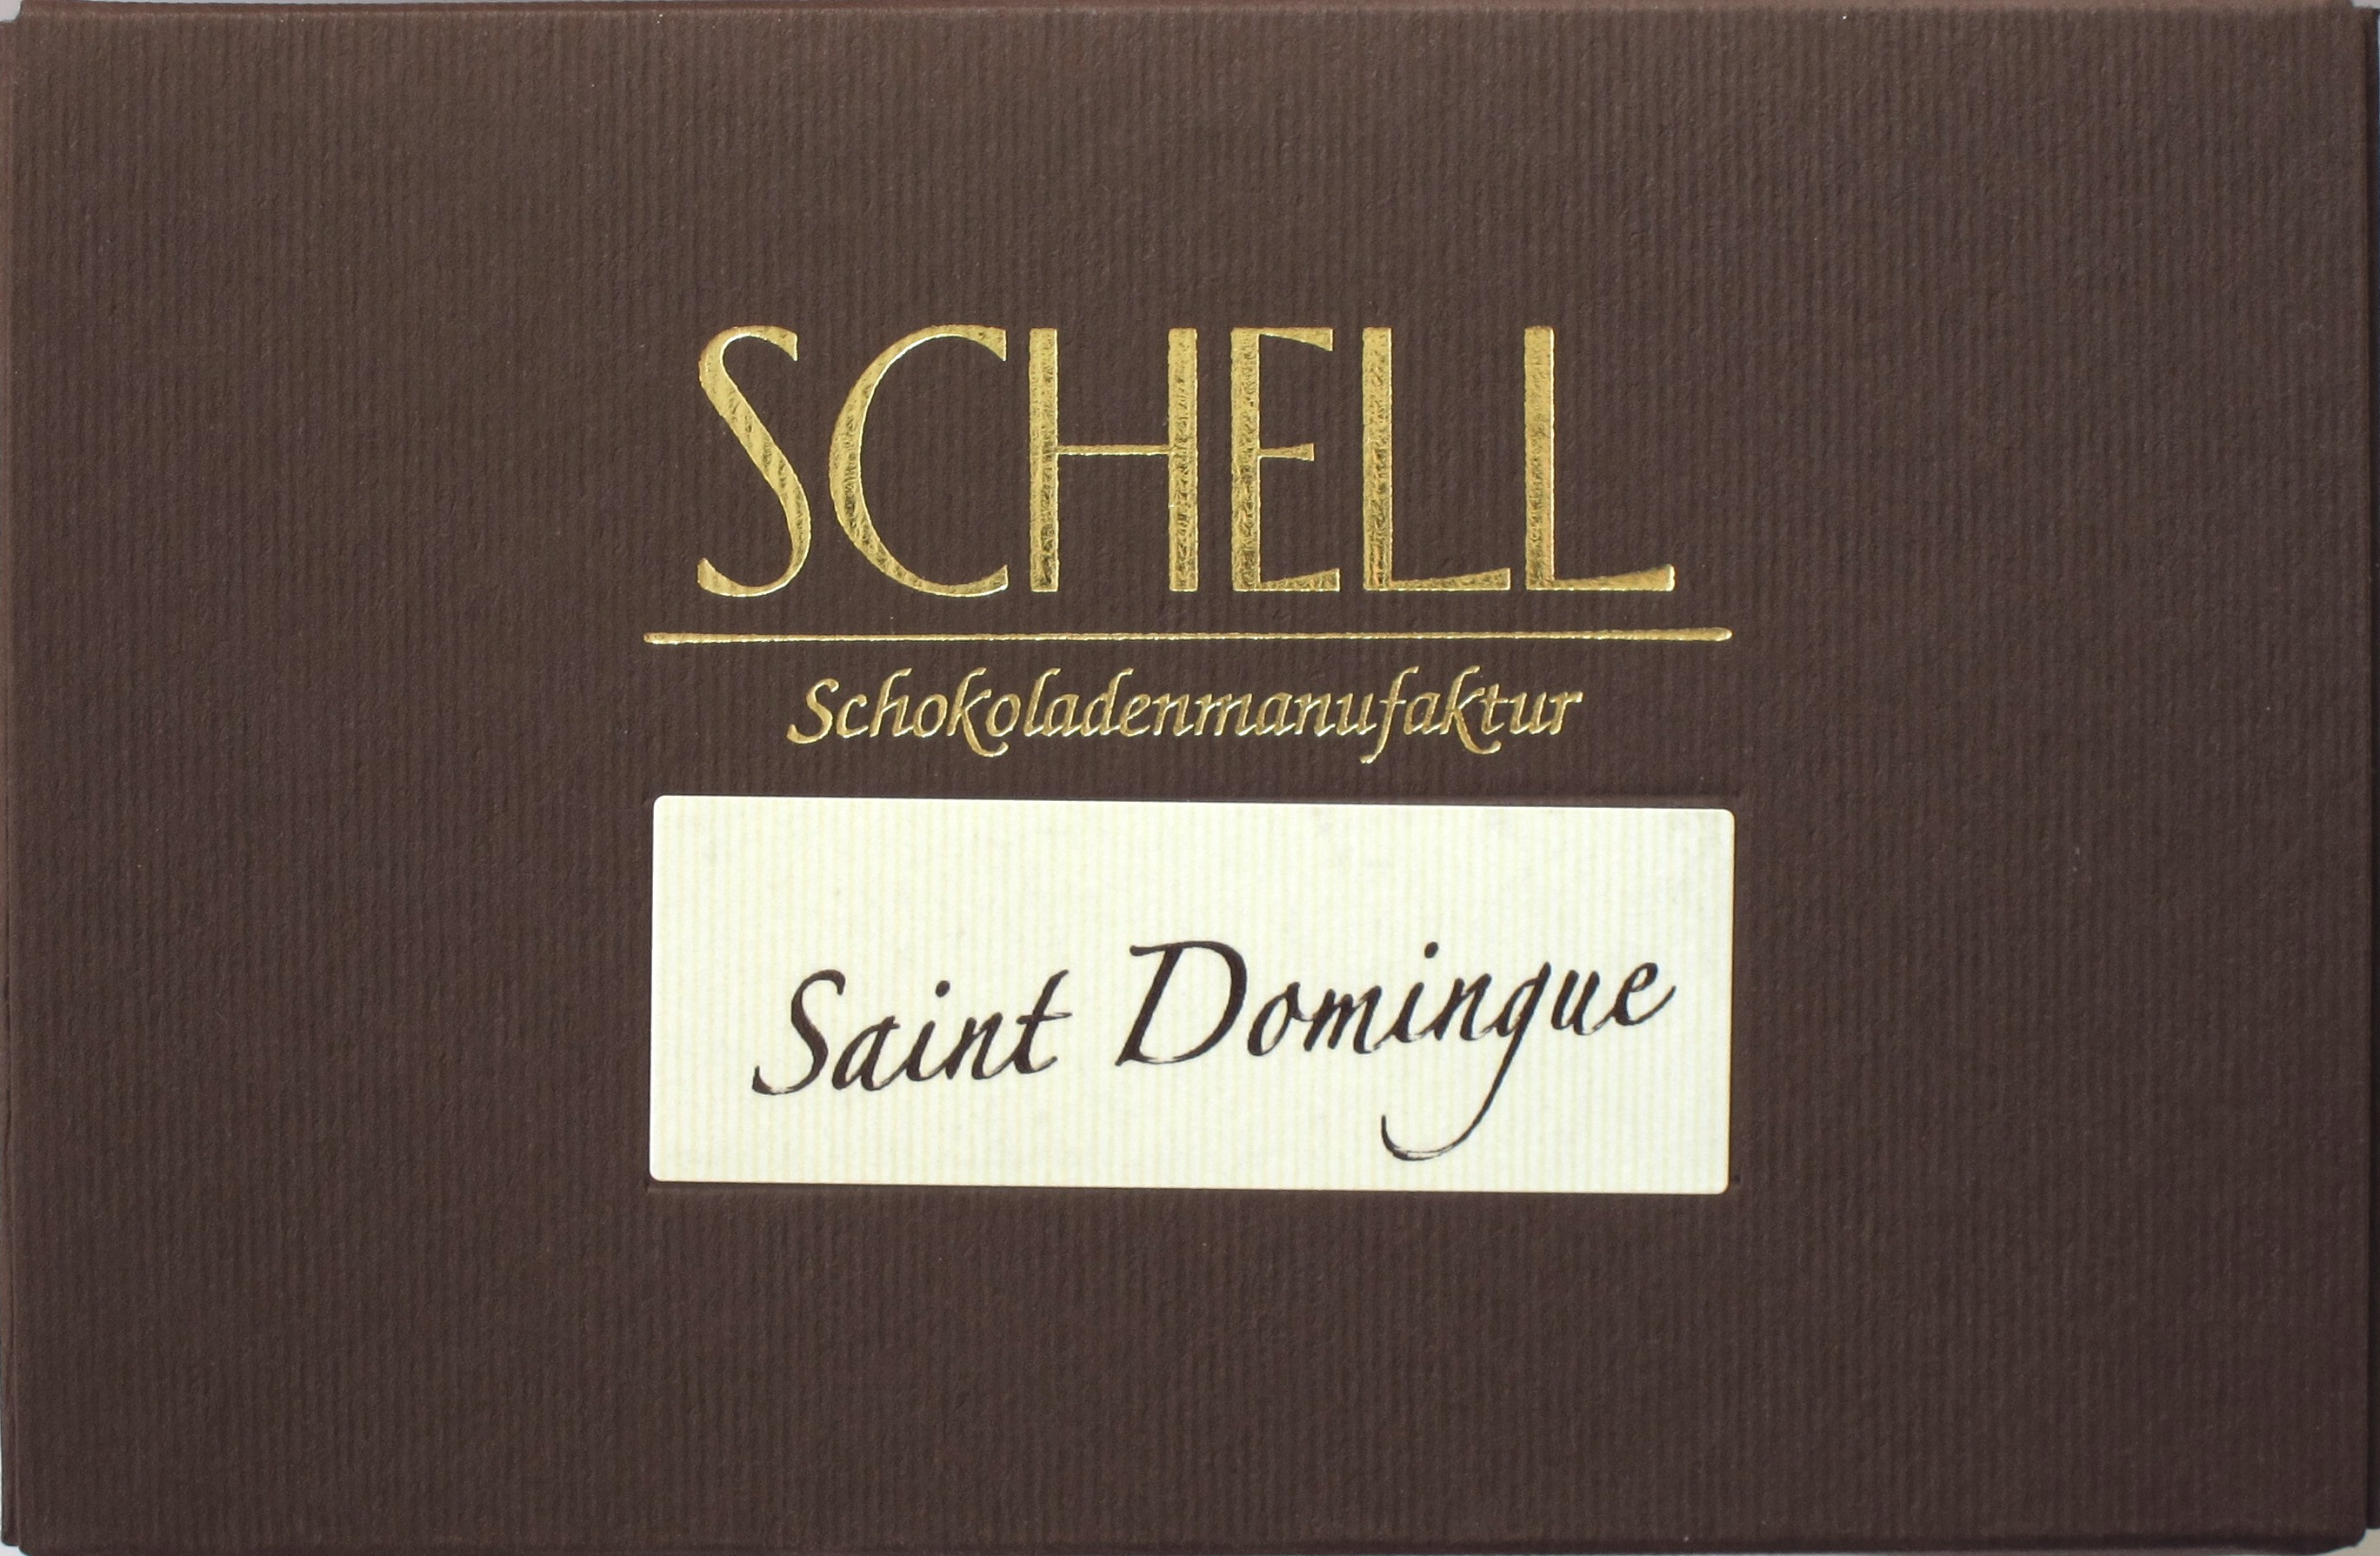 Schachtel Schell 'Saint Domingue'